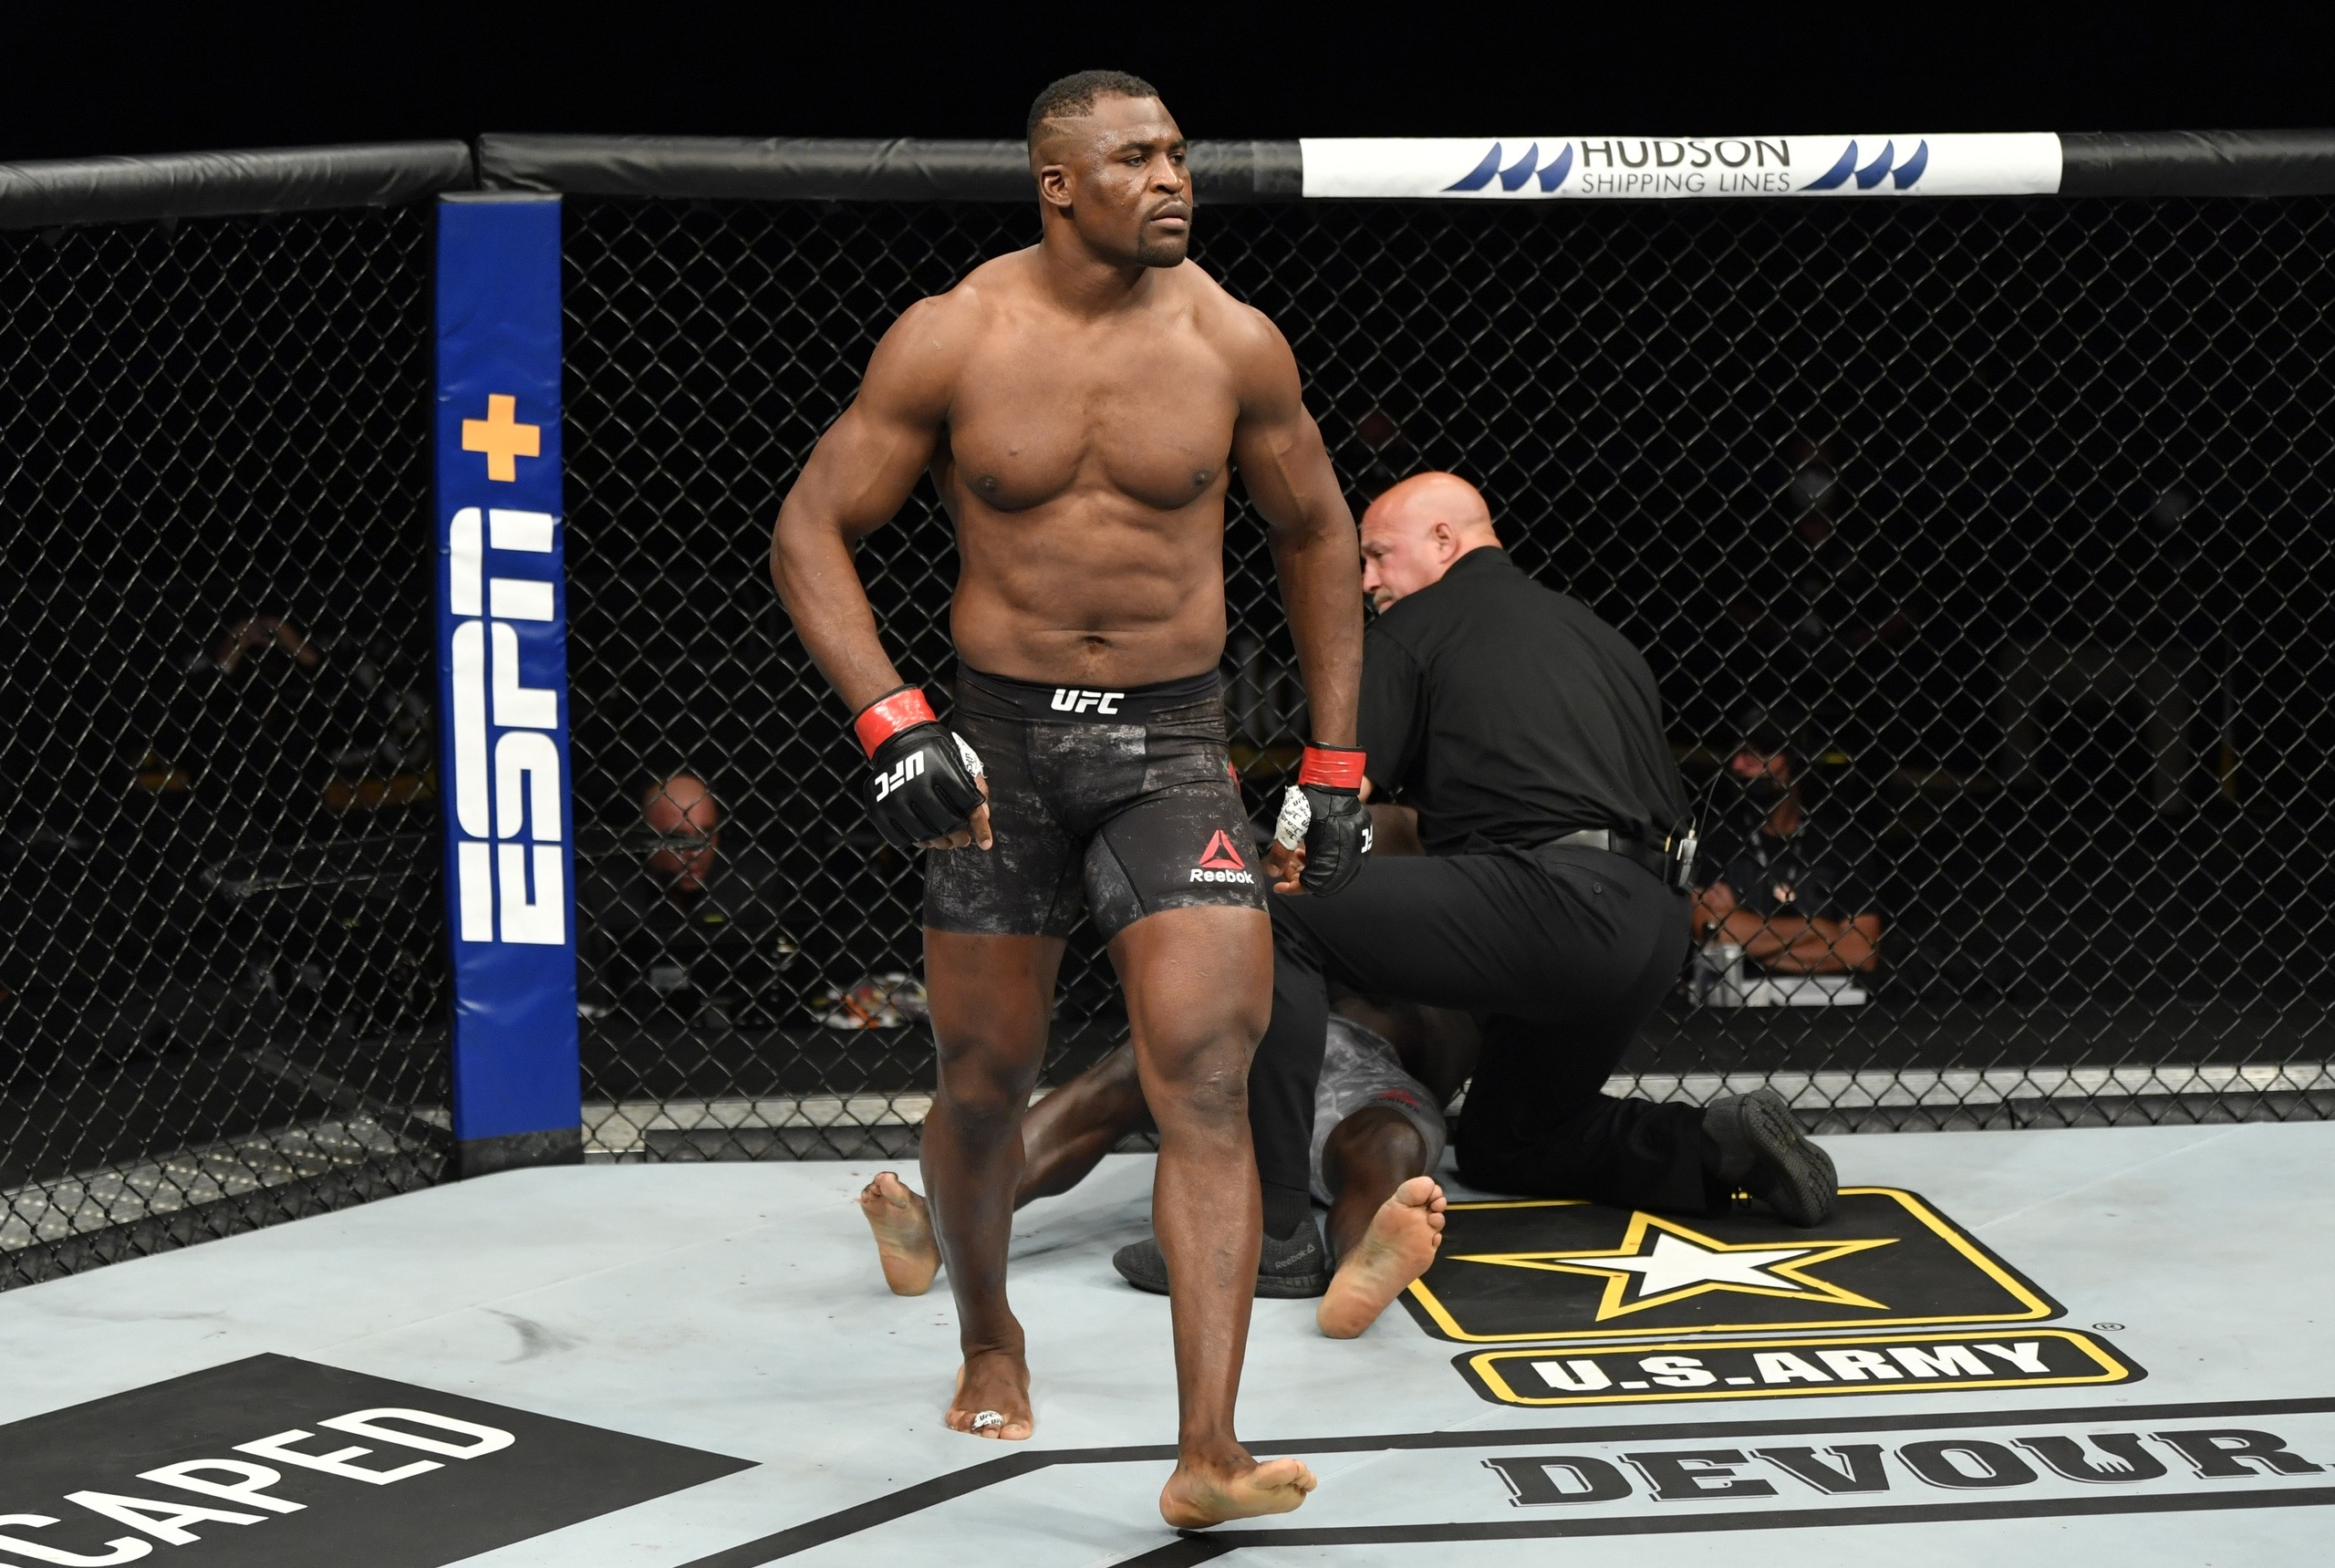 MMA news: Francis Ngannou was brutally hit in the body by an action sports athlete Ryan Williams. Video.